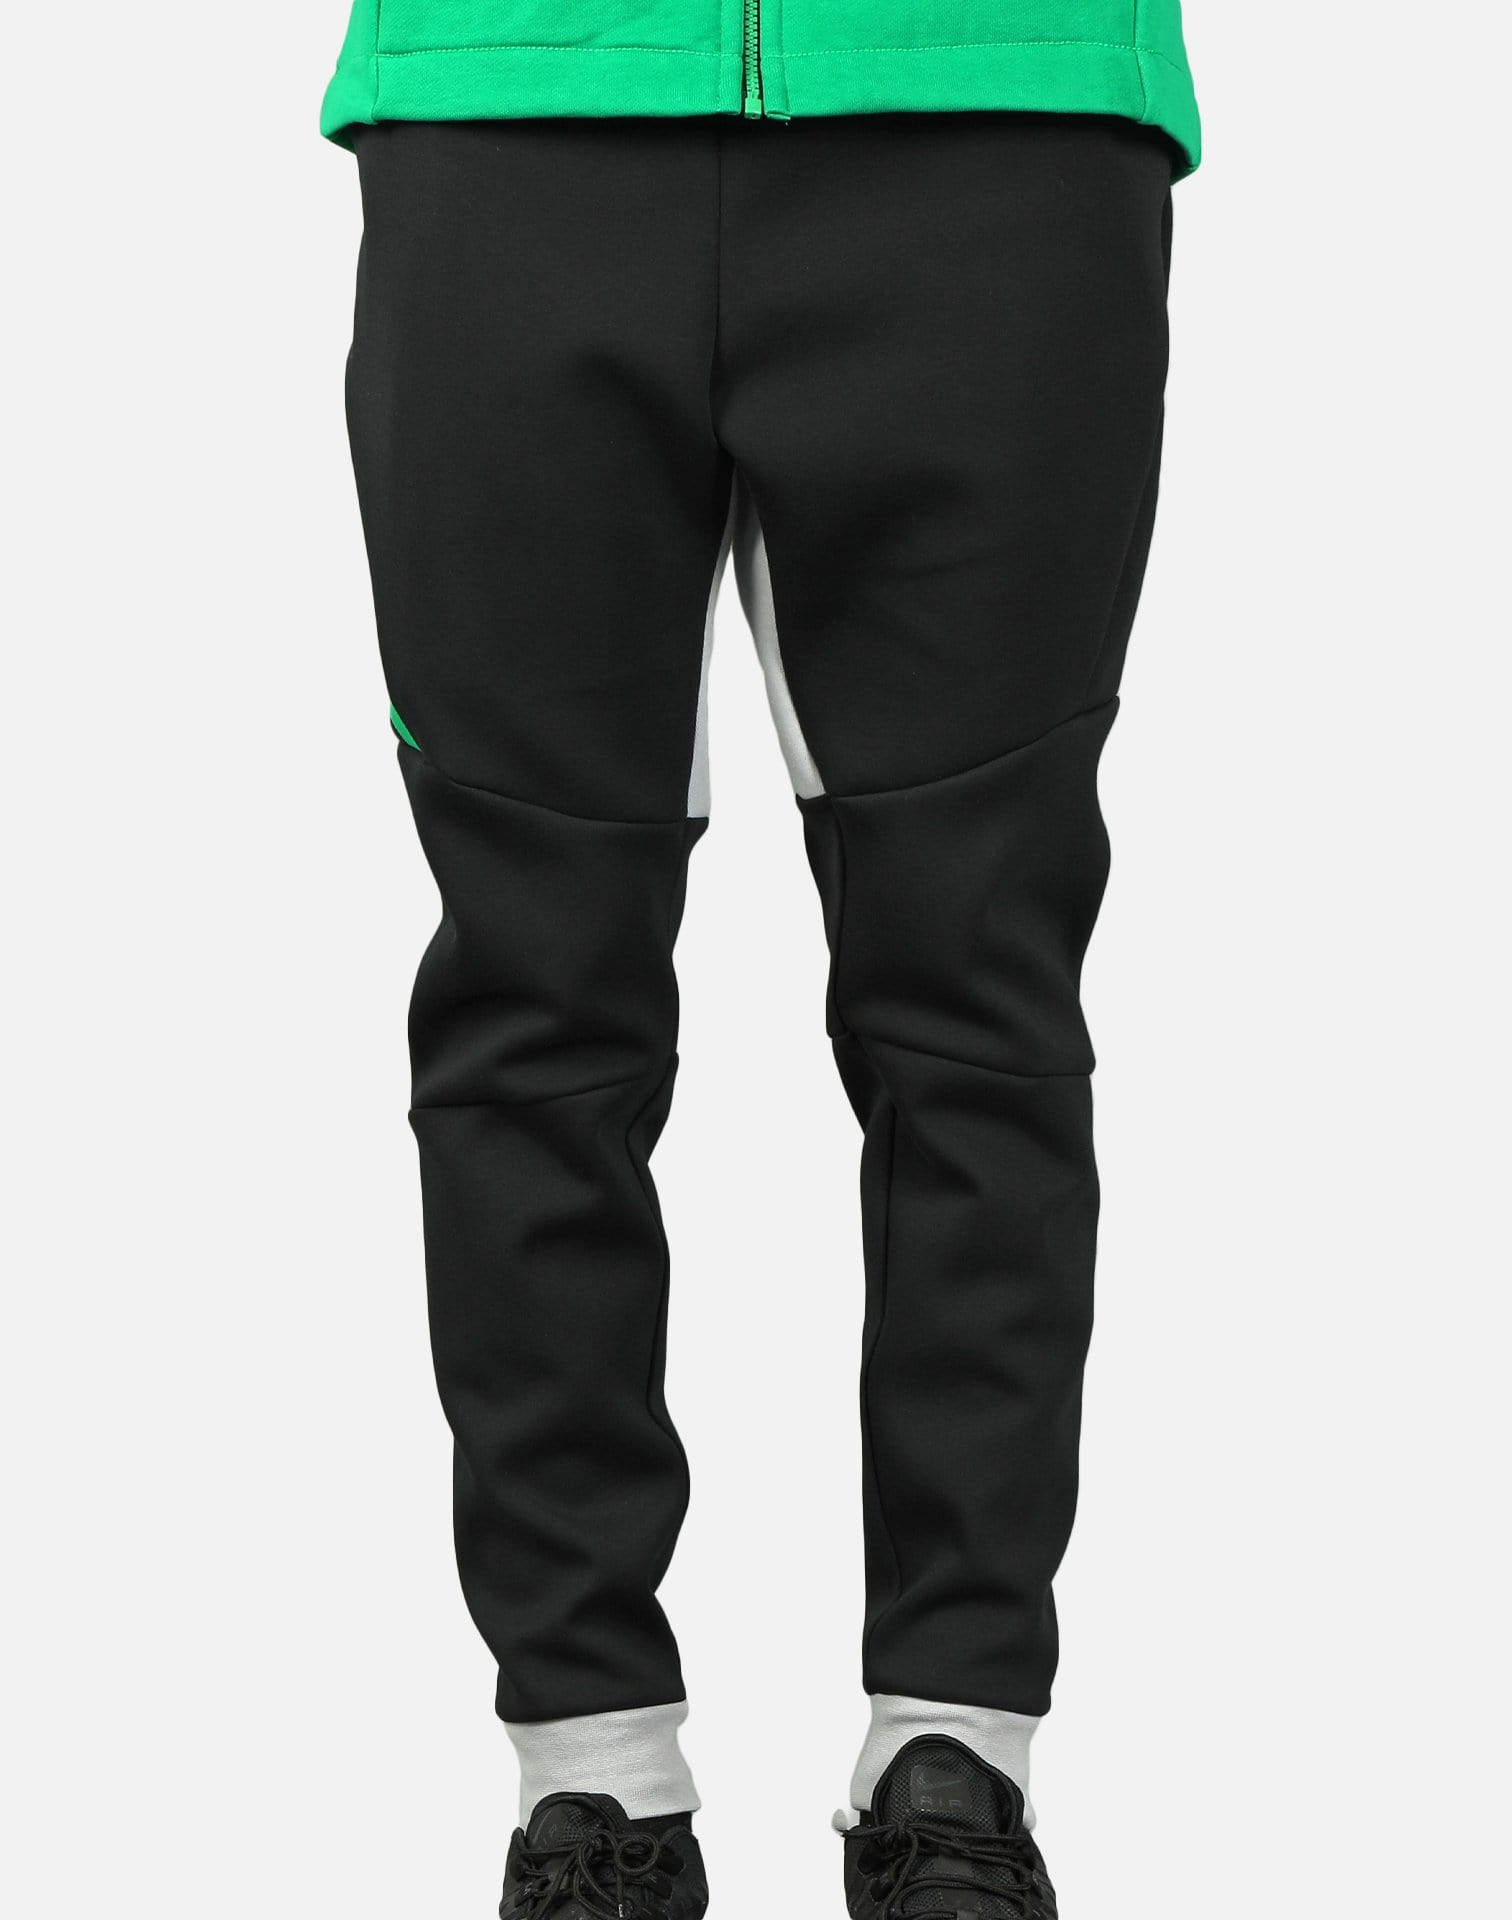 Nike NSW SAWYER TECH FLEECE DOERNBECHER JOGGERS